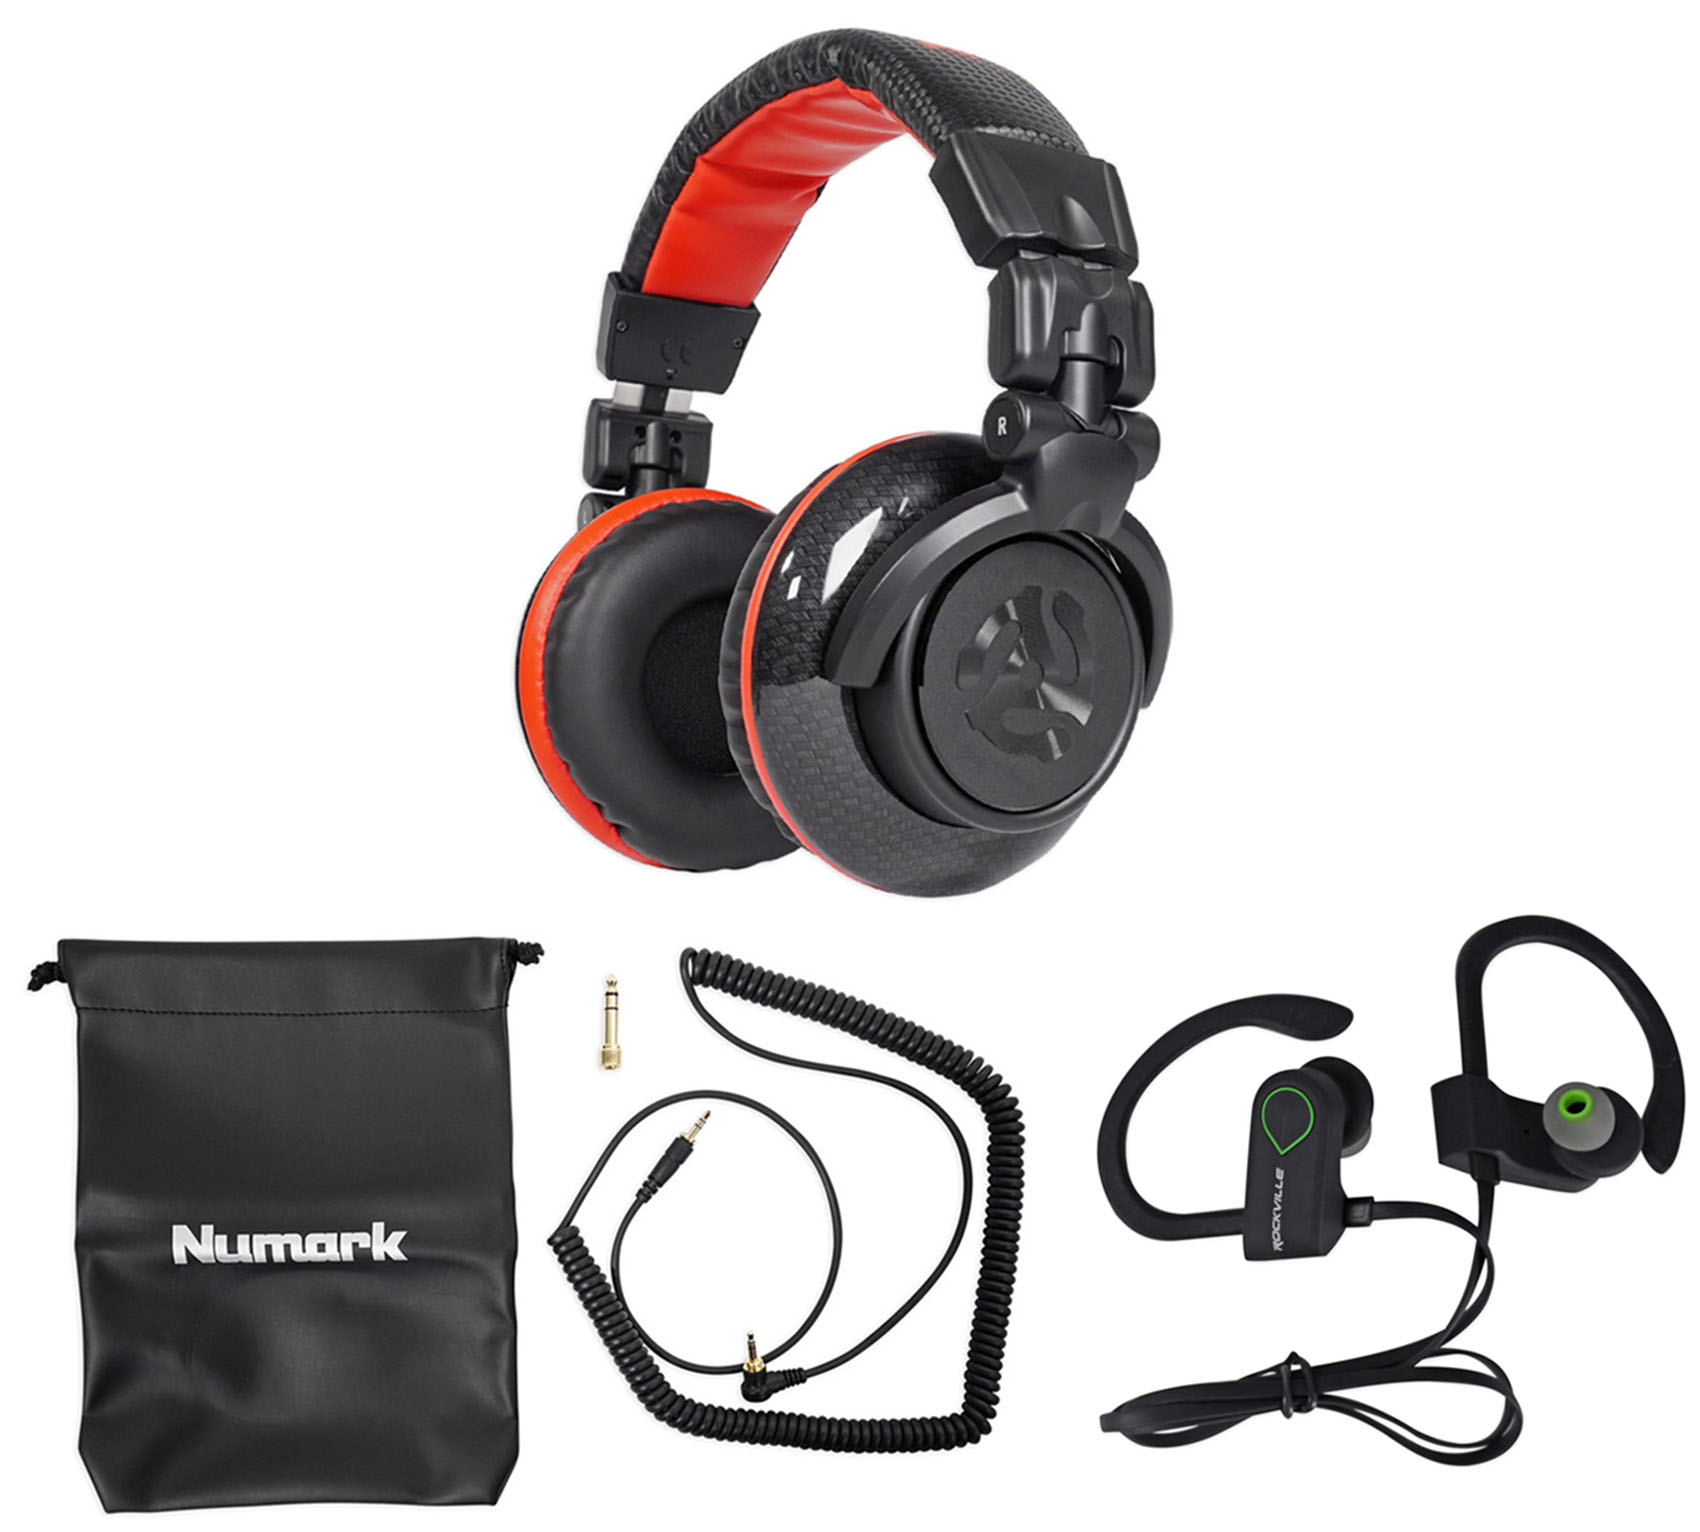 Numark Red Wave Carbon Pro Full-Range Mixing DJ Headphones+Pouch Redwave+Earbuds